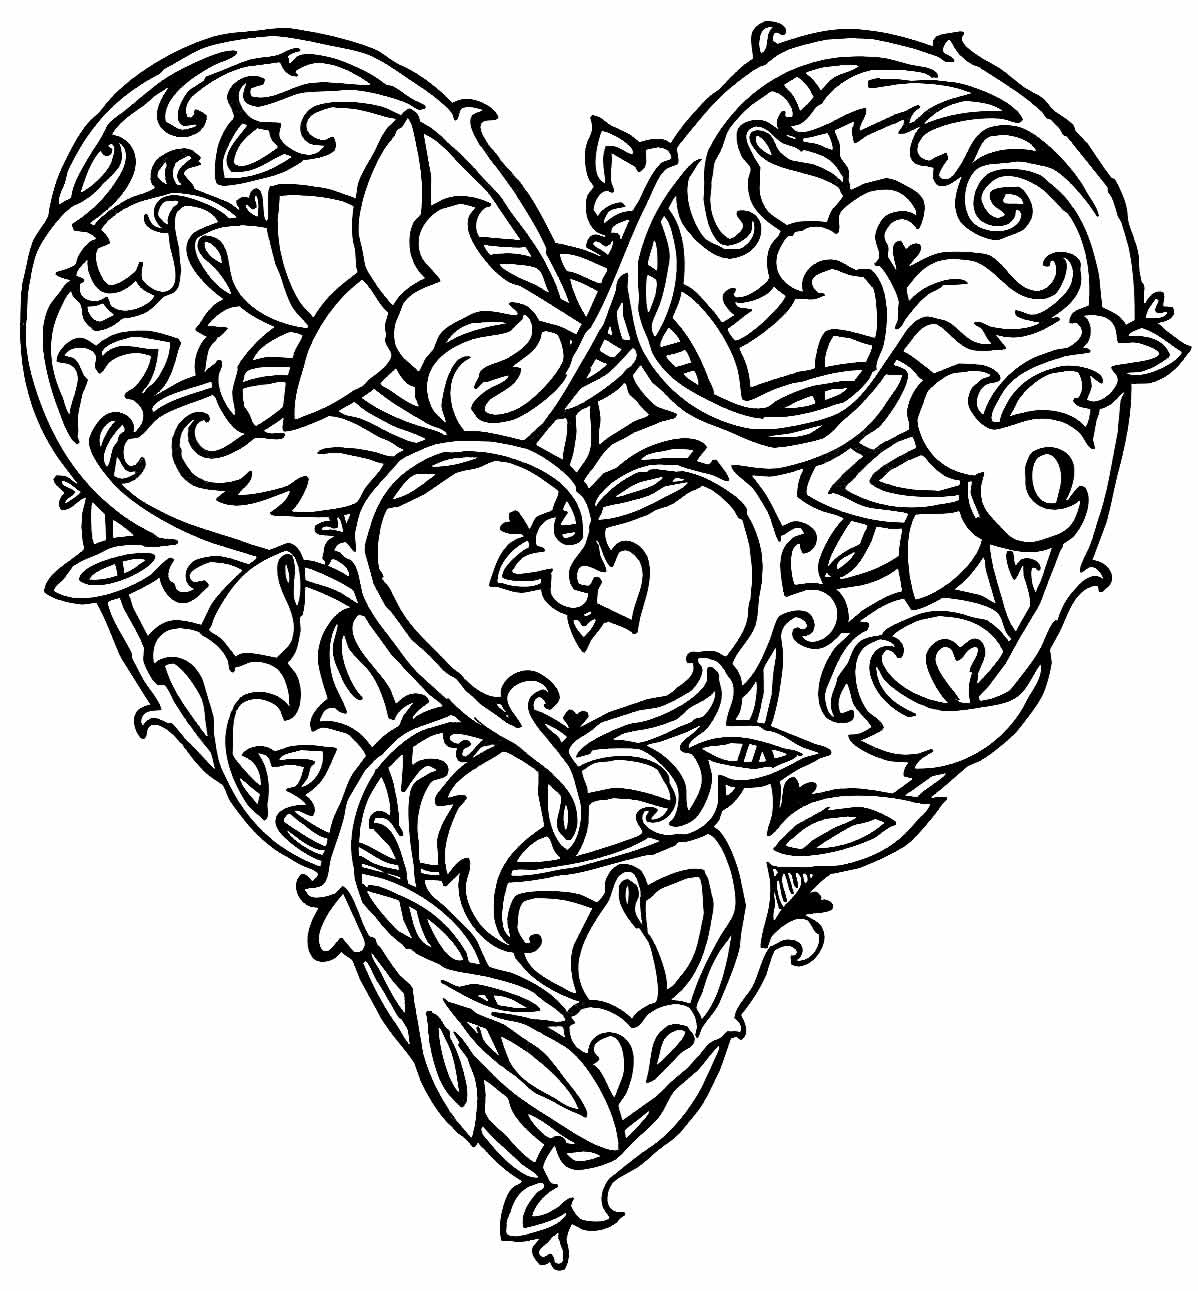 Heart image to paint